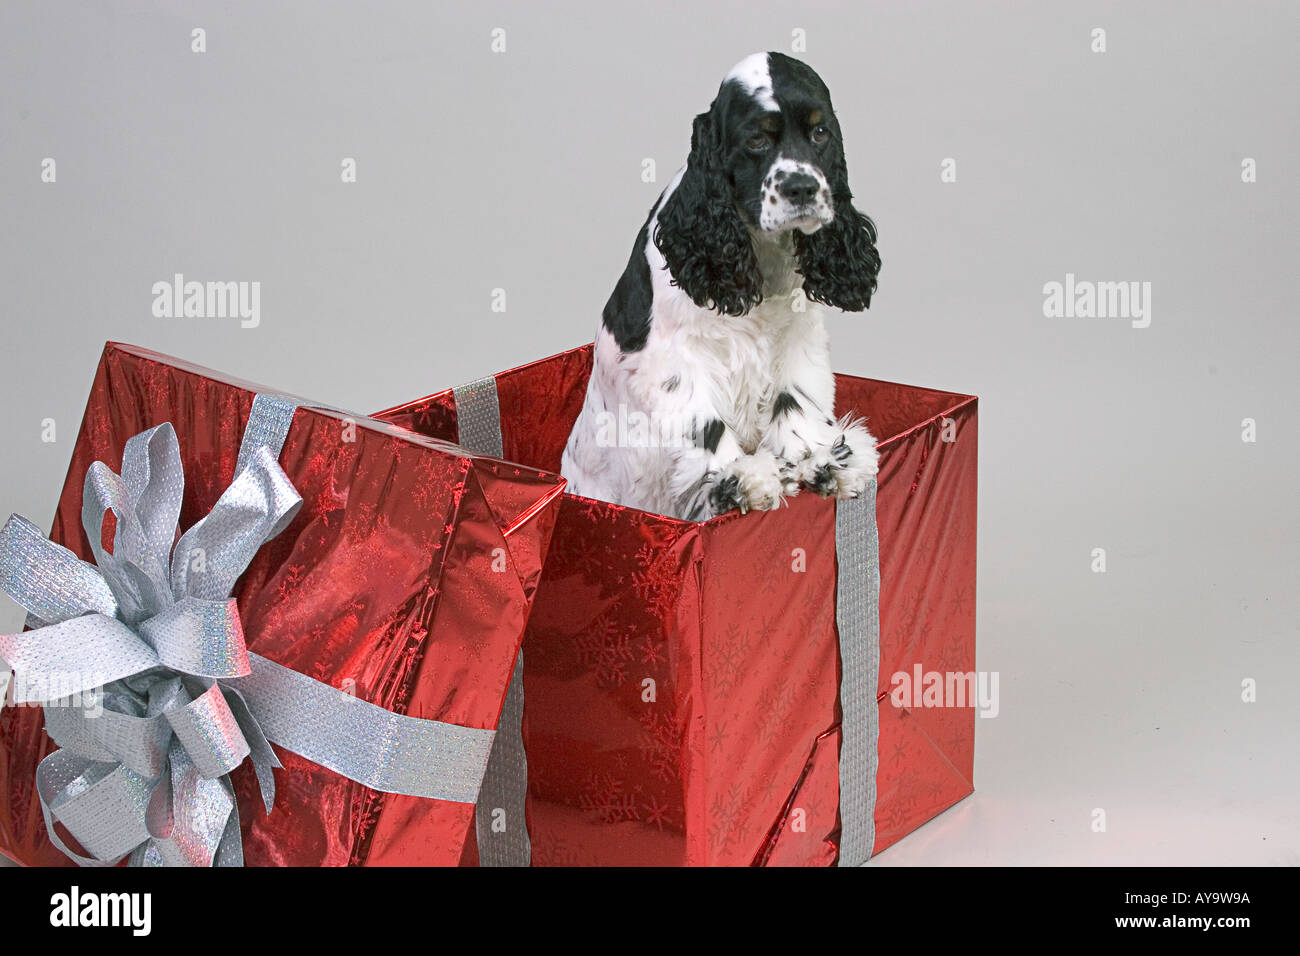 Black and white cocker spaniel dog in a large red gift box against a neutral backdrop - Stock Image